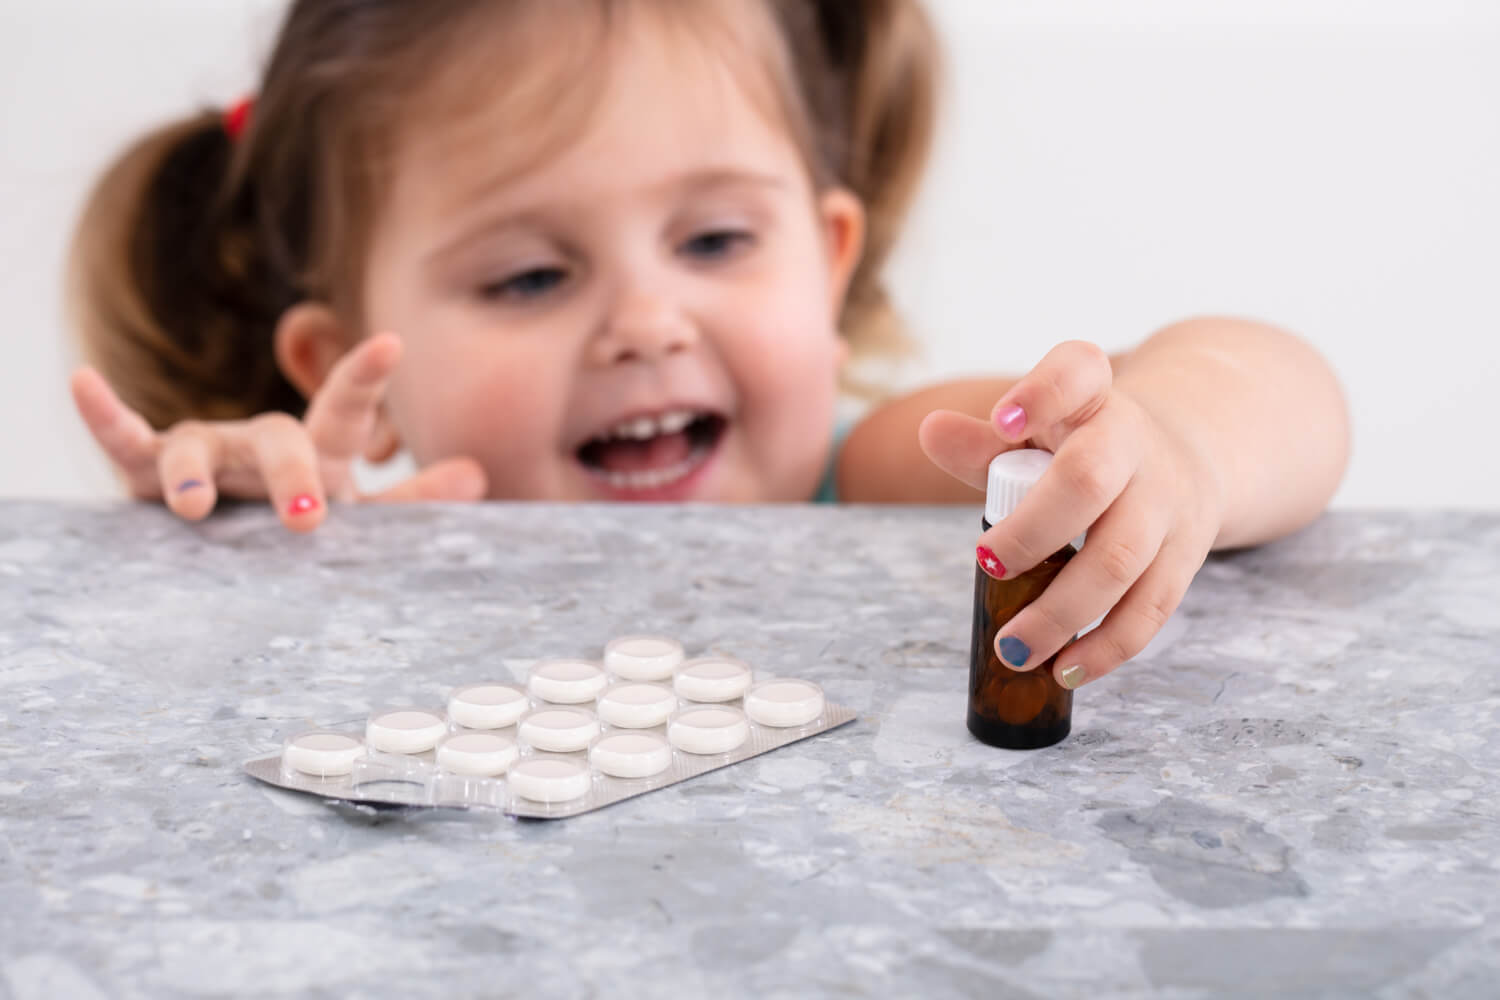 Child Safety - Store and Use Medicines Safely